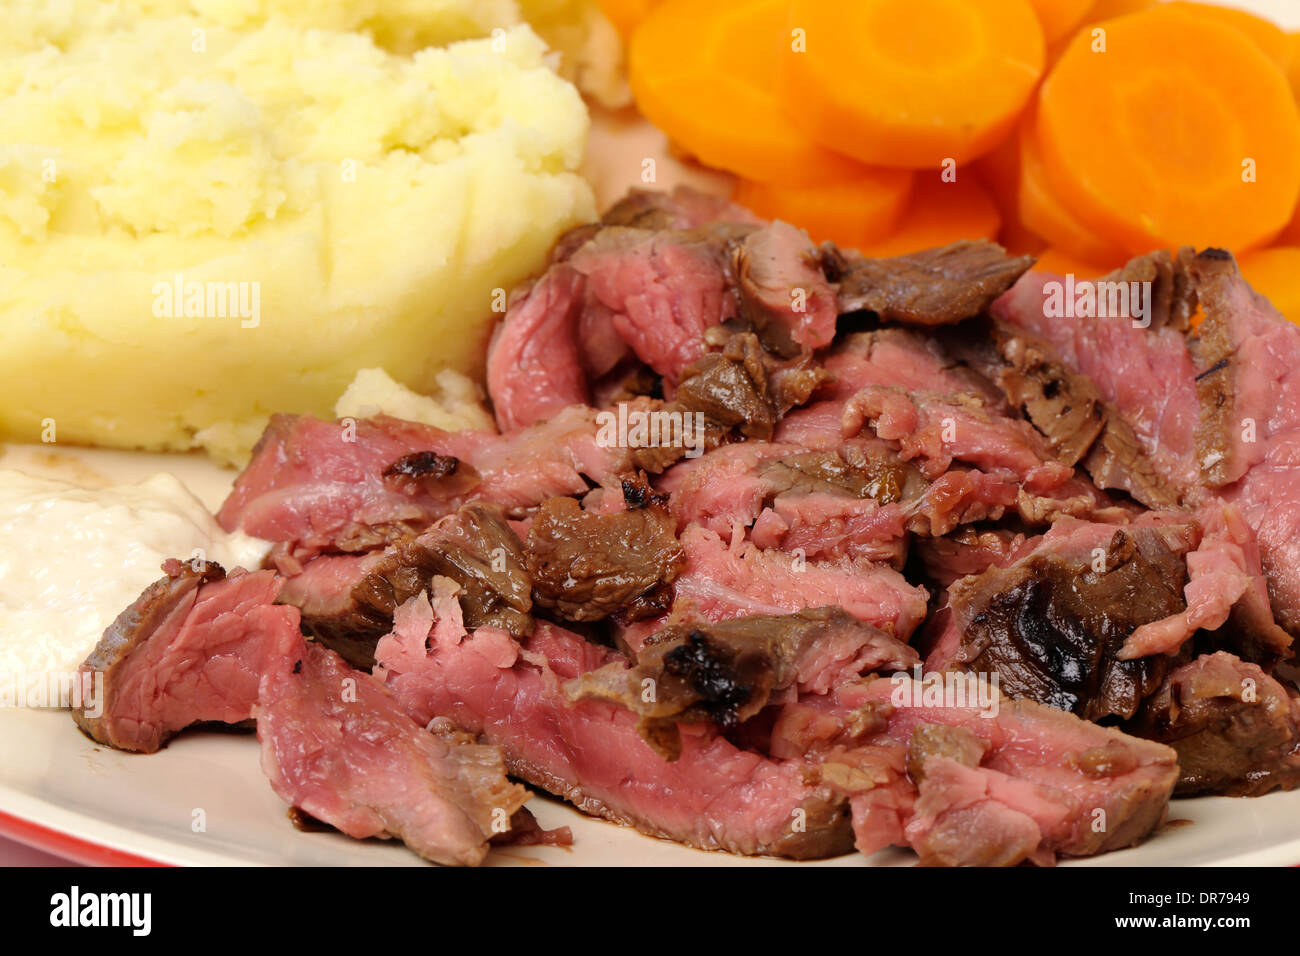 'London broil' marinaded flank of beef steak grilled and sliced thinly, then served with  potato,  carrots and horseradish sauce - Stock Image